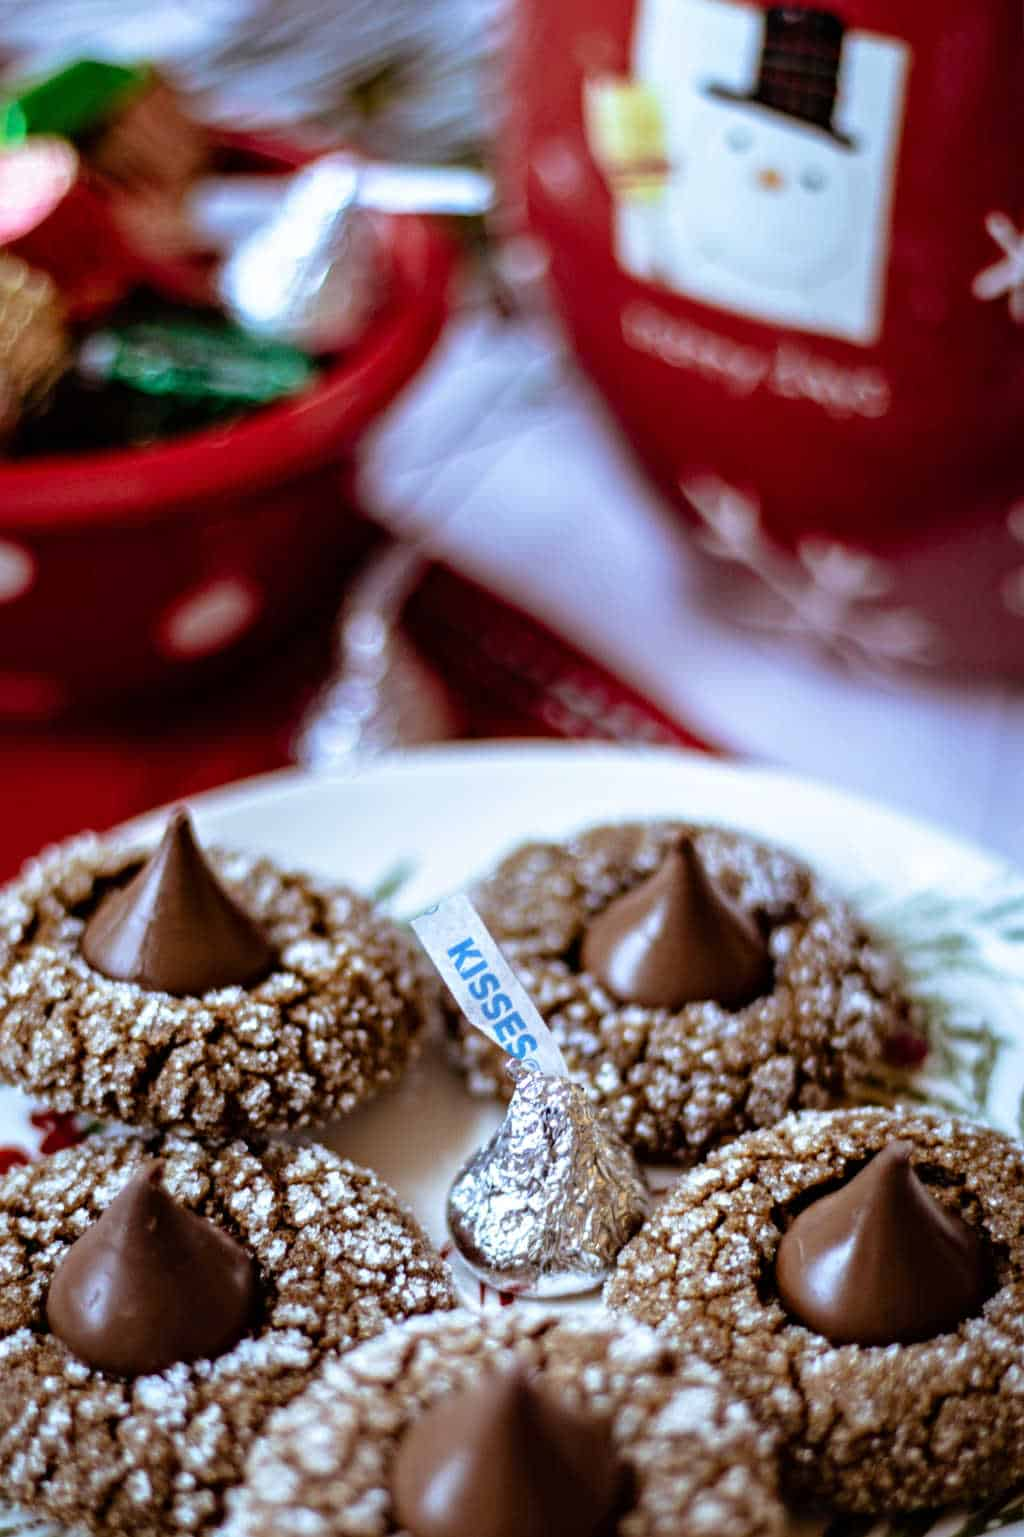 gingerbread gems on a plate with a wrapped Hershey's kiss